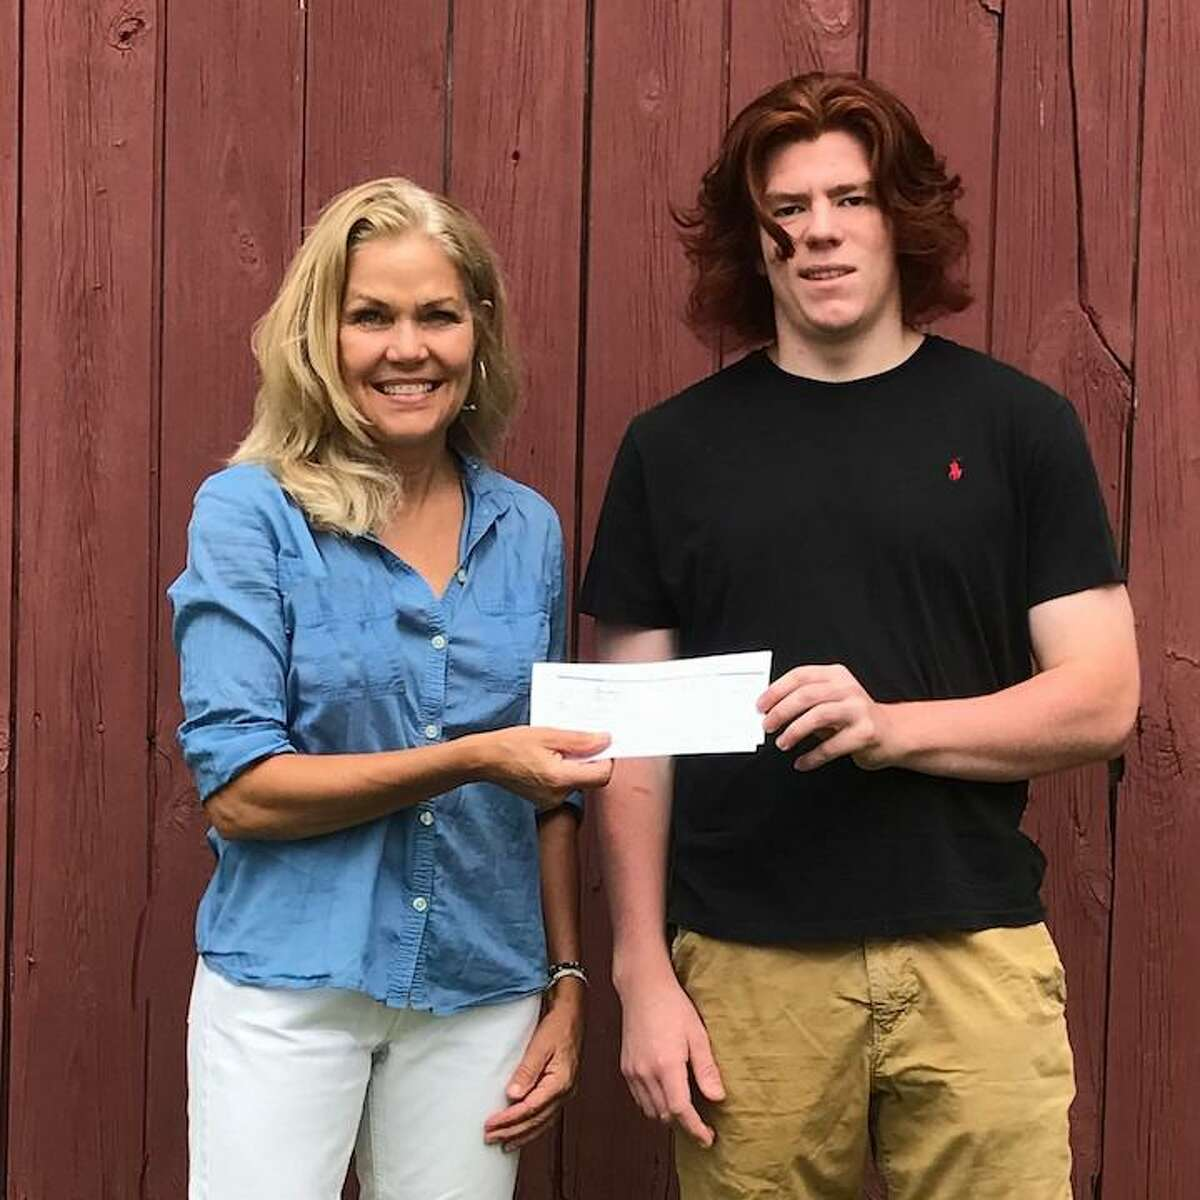 The co founders, of the company, and the creator of the original ponytail hat, Trailheads, in Kent, Connecticut, recently presented the first recipient of the company's $500 Housatonic Valley Regional Scholarship Award, (HVRHS), on Thursday, July 29, to Patrick Merrill of Lakeville, Connecticut, and who is attending the Culinary Institute of America in Hyde Park, N.Y., in the fall. Pictured are: Trailheads Co-Founder, and also President, Stephanie Raftery, and Merrill.